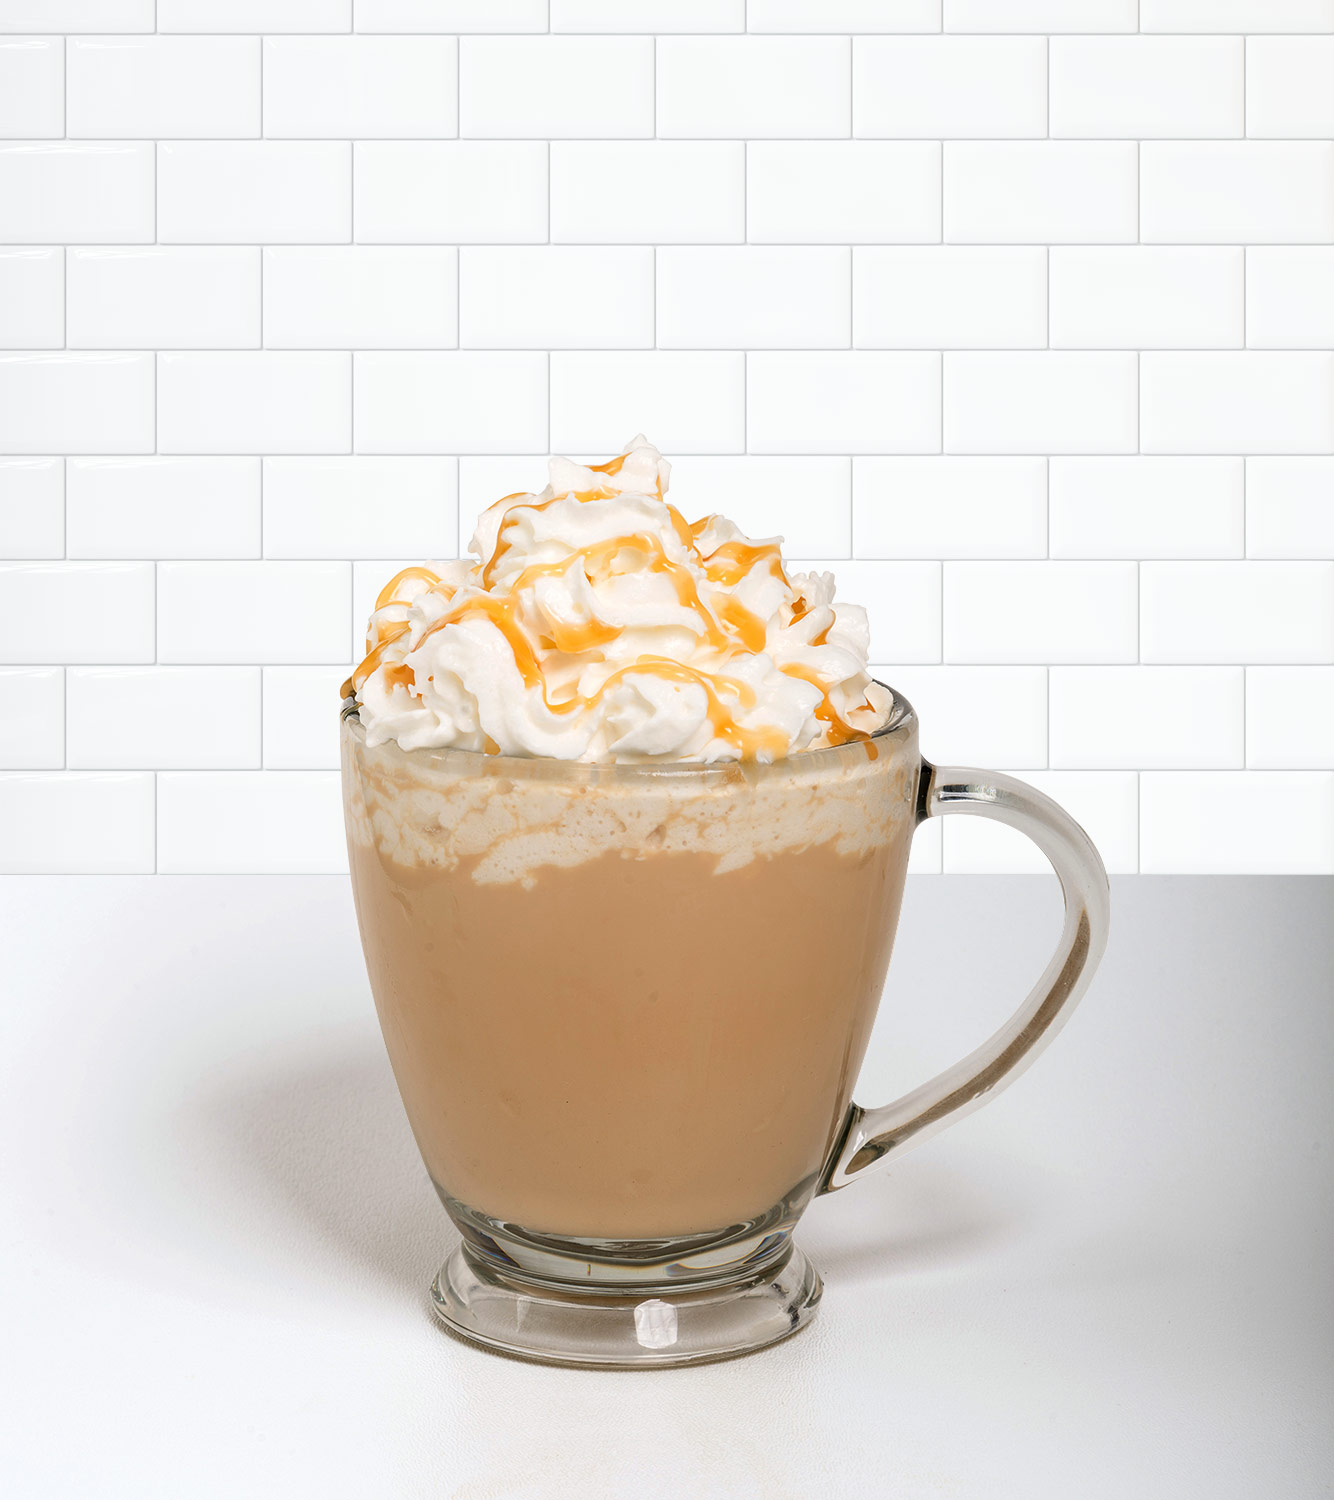 Caramel Créme in a beverage container